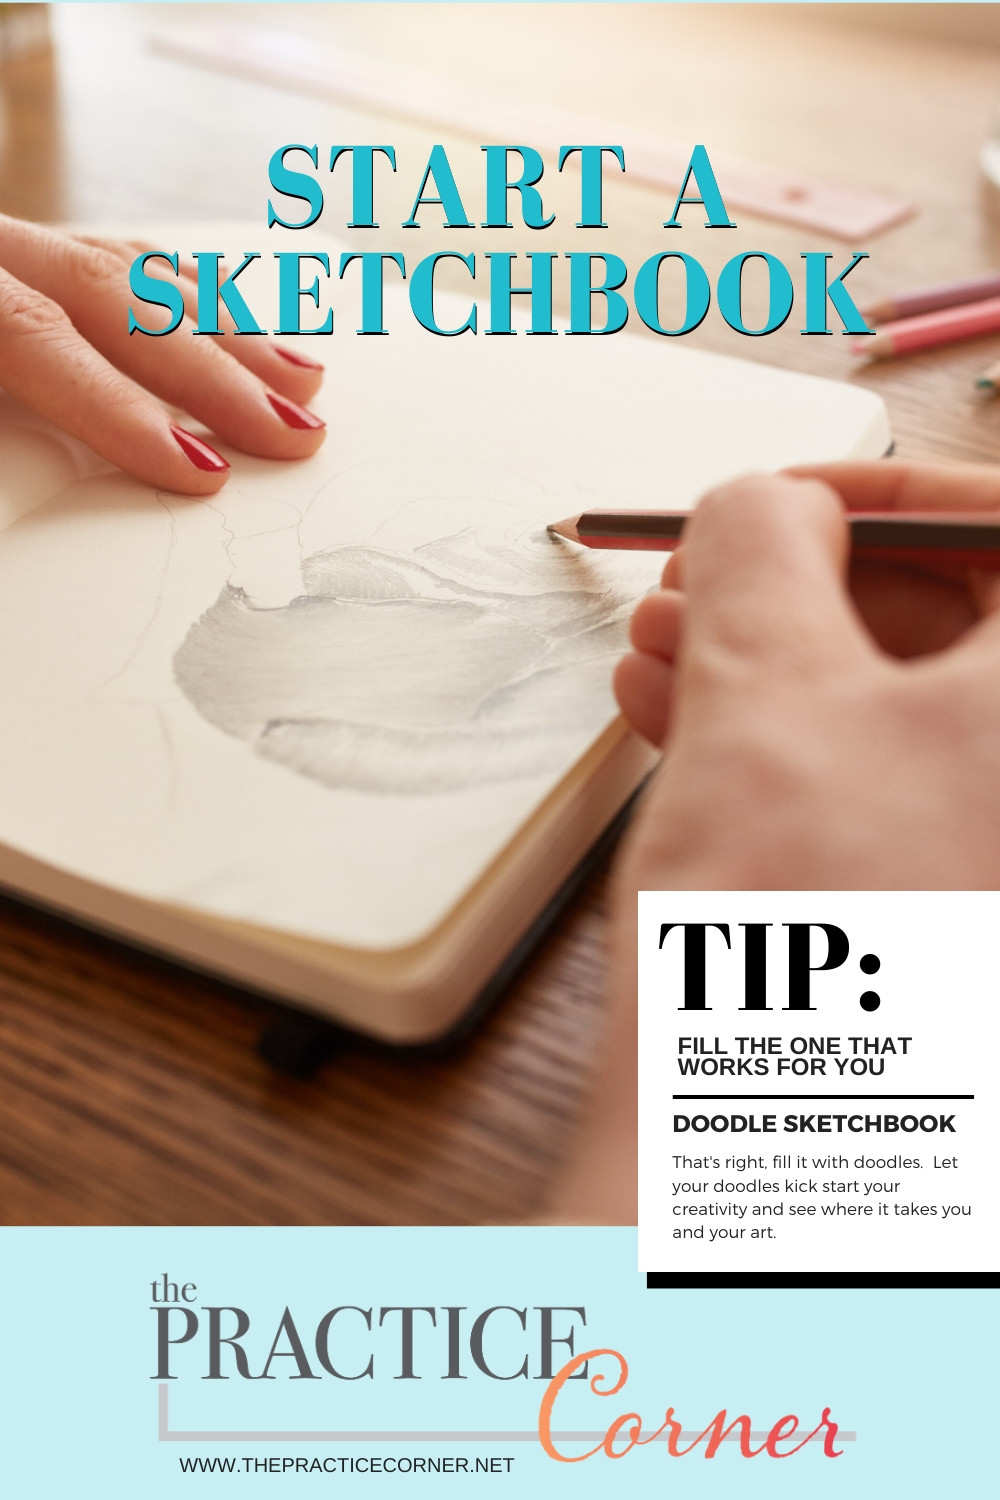 3 Ways to Fill A Sketchbook #coloredpencilpractice #copicmarkerpractice  #thepracticecorner #coloringtechniques